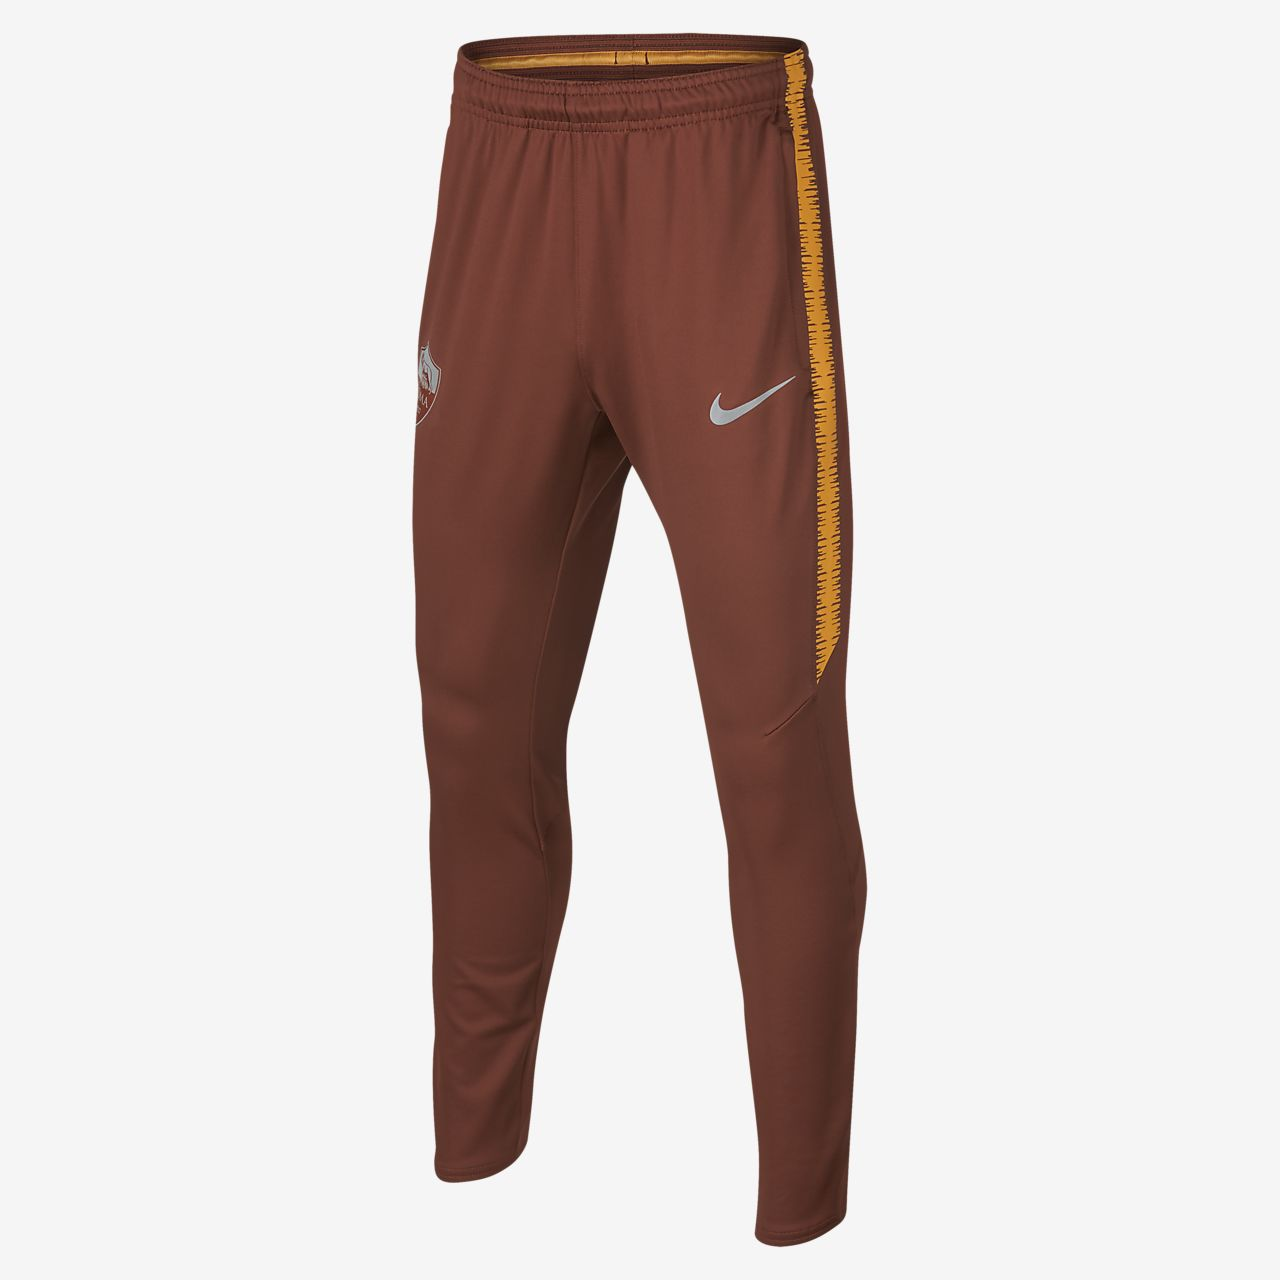 Pantalon de football A.S. Roma Dri-FIT Squad pour Enfant plus âgé